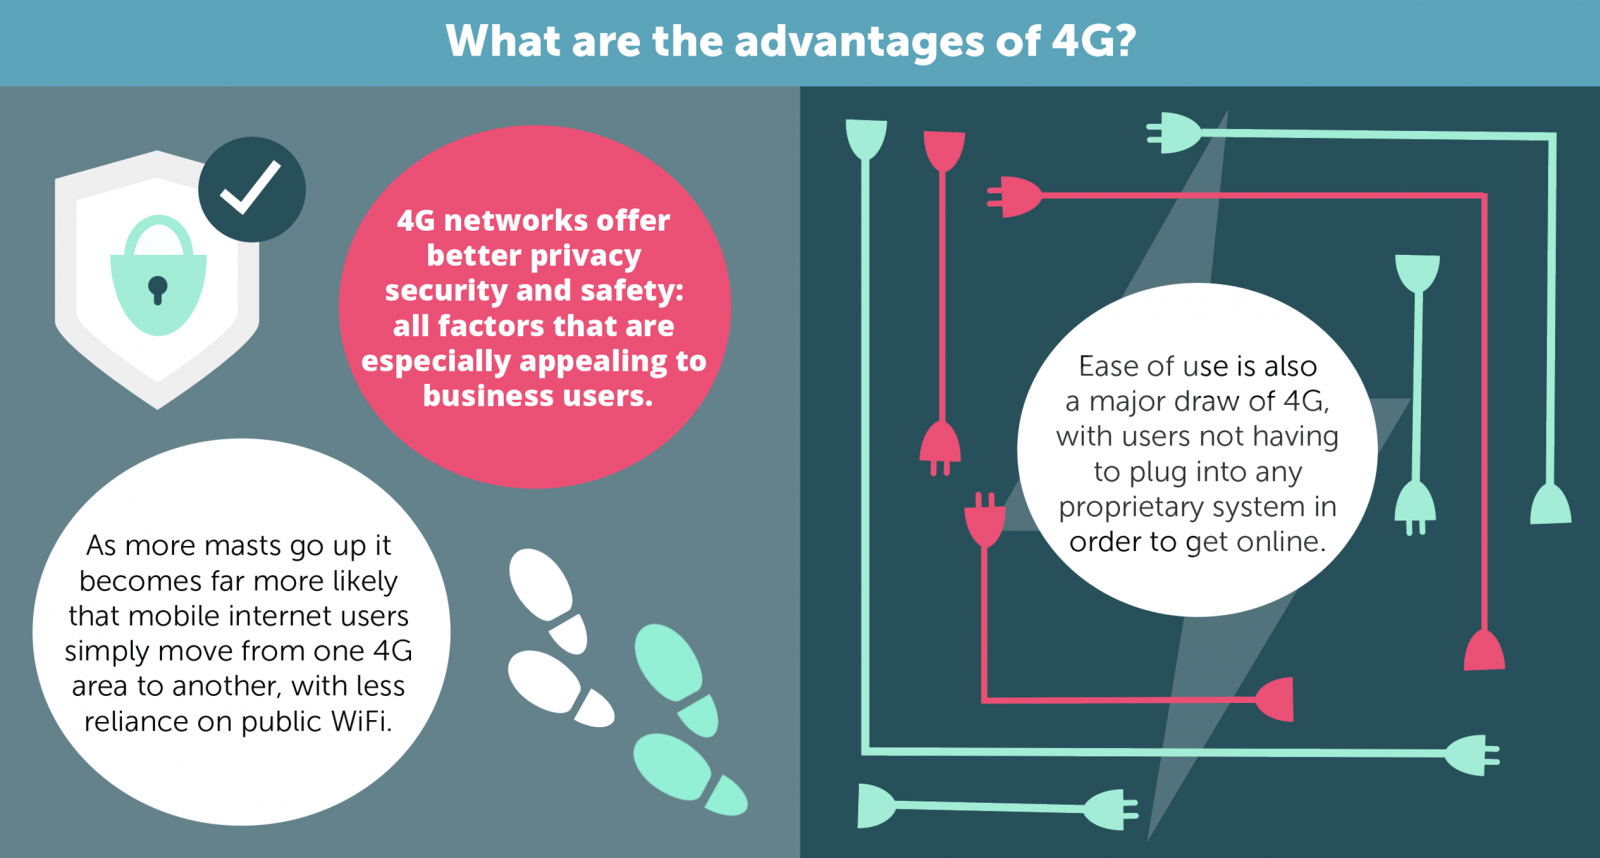 What are the advantages of 4G?